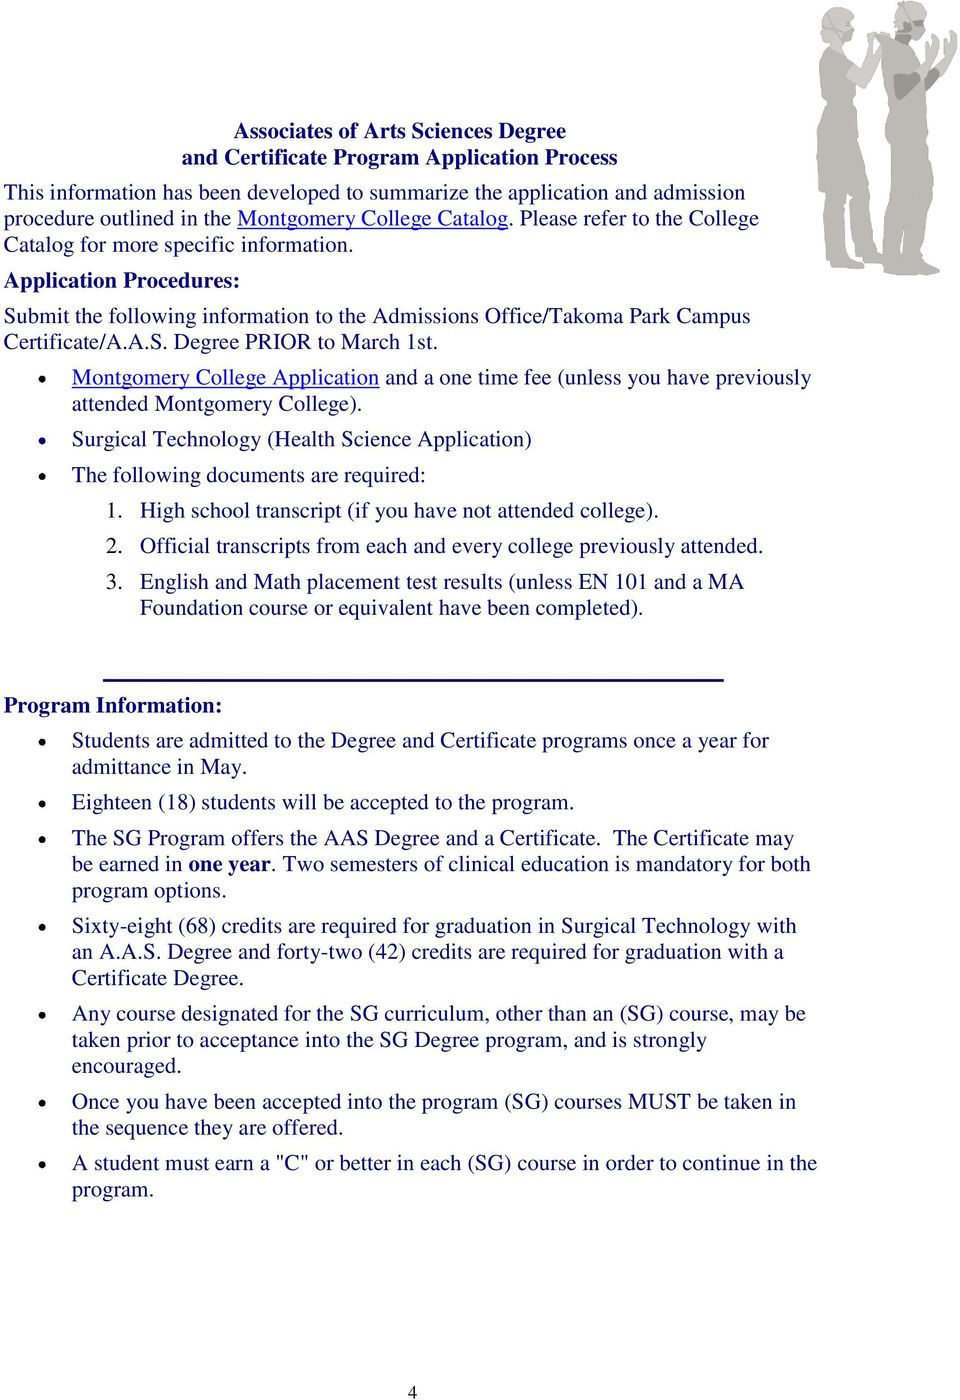 A.S. Degree PRIOR to March 1st. Montgomery College Application and a one time fee (unless you have previously attended Montgomery College).